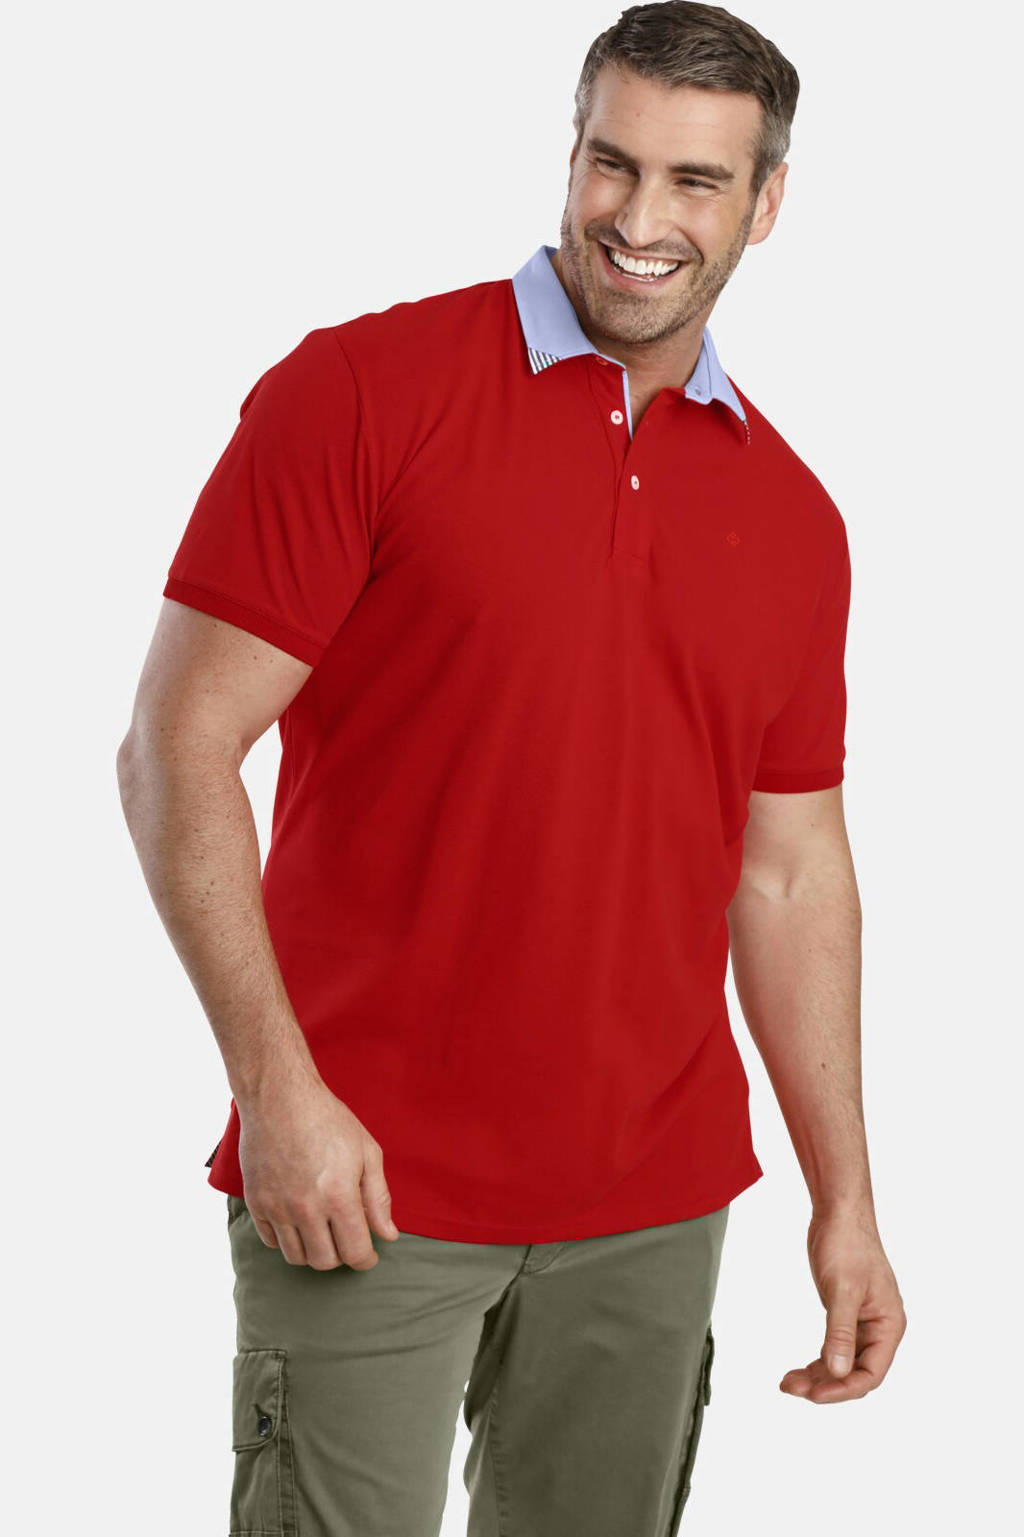 Charles Colby oversized polo EARL OZAN Plus Size rood, Rood